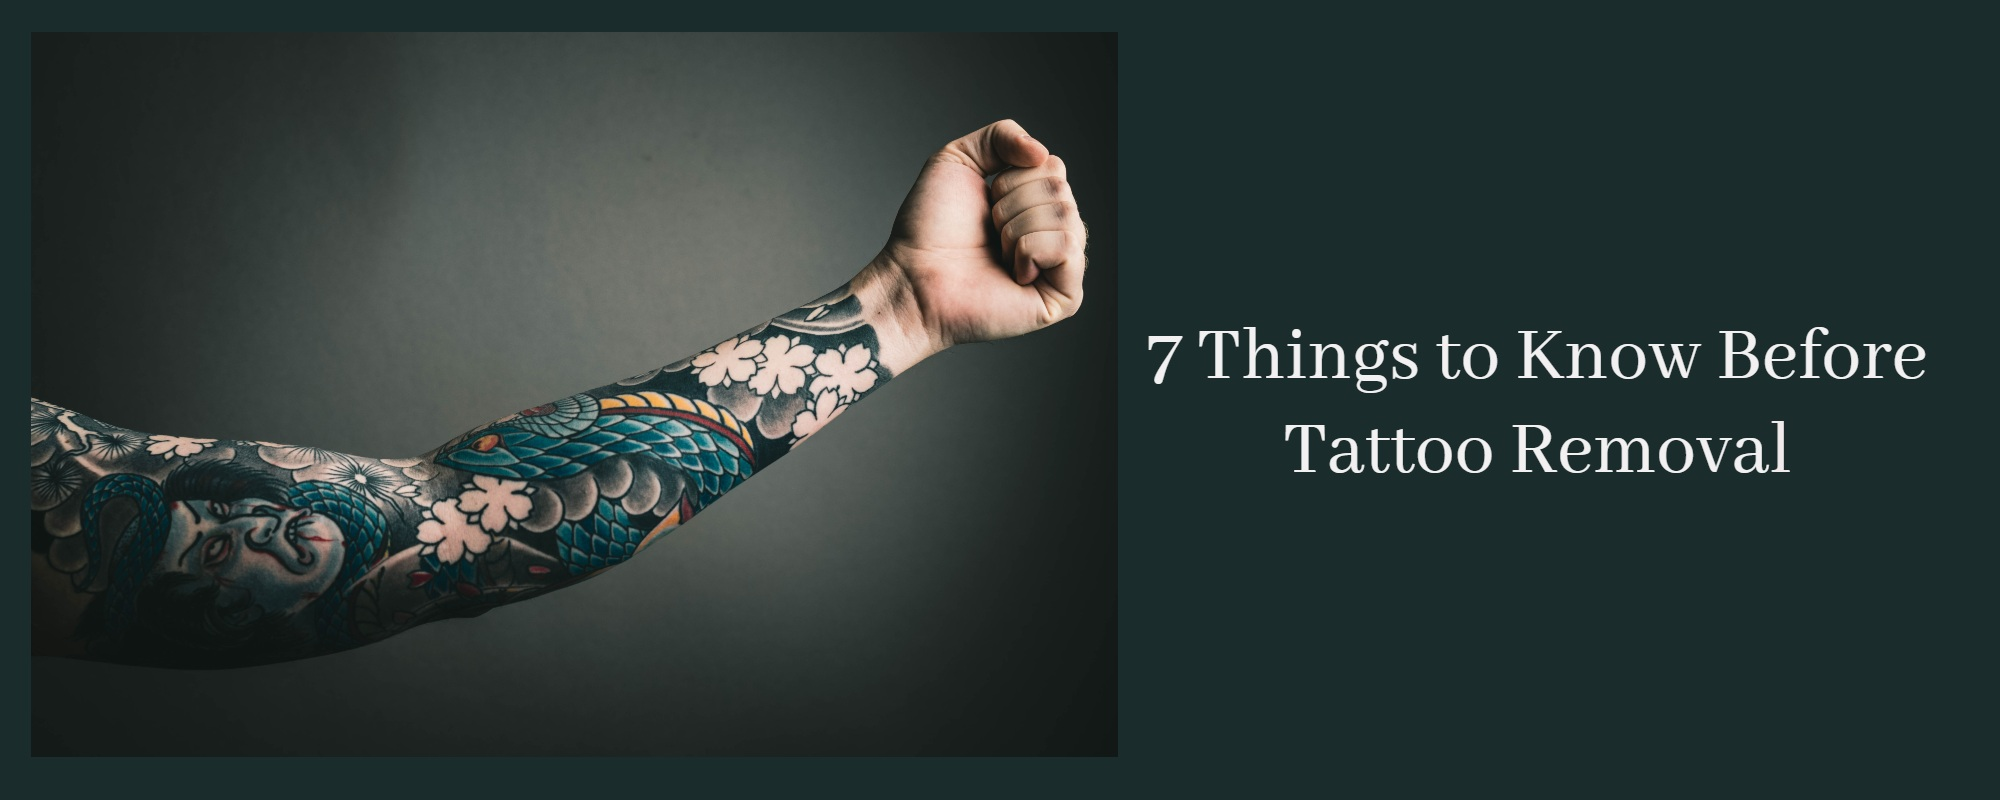 Things to Know About Tattoo Removal